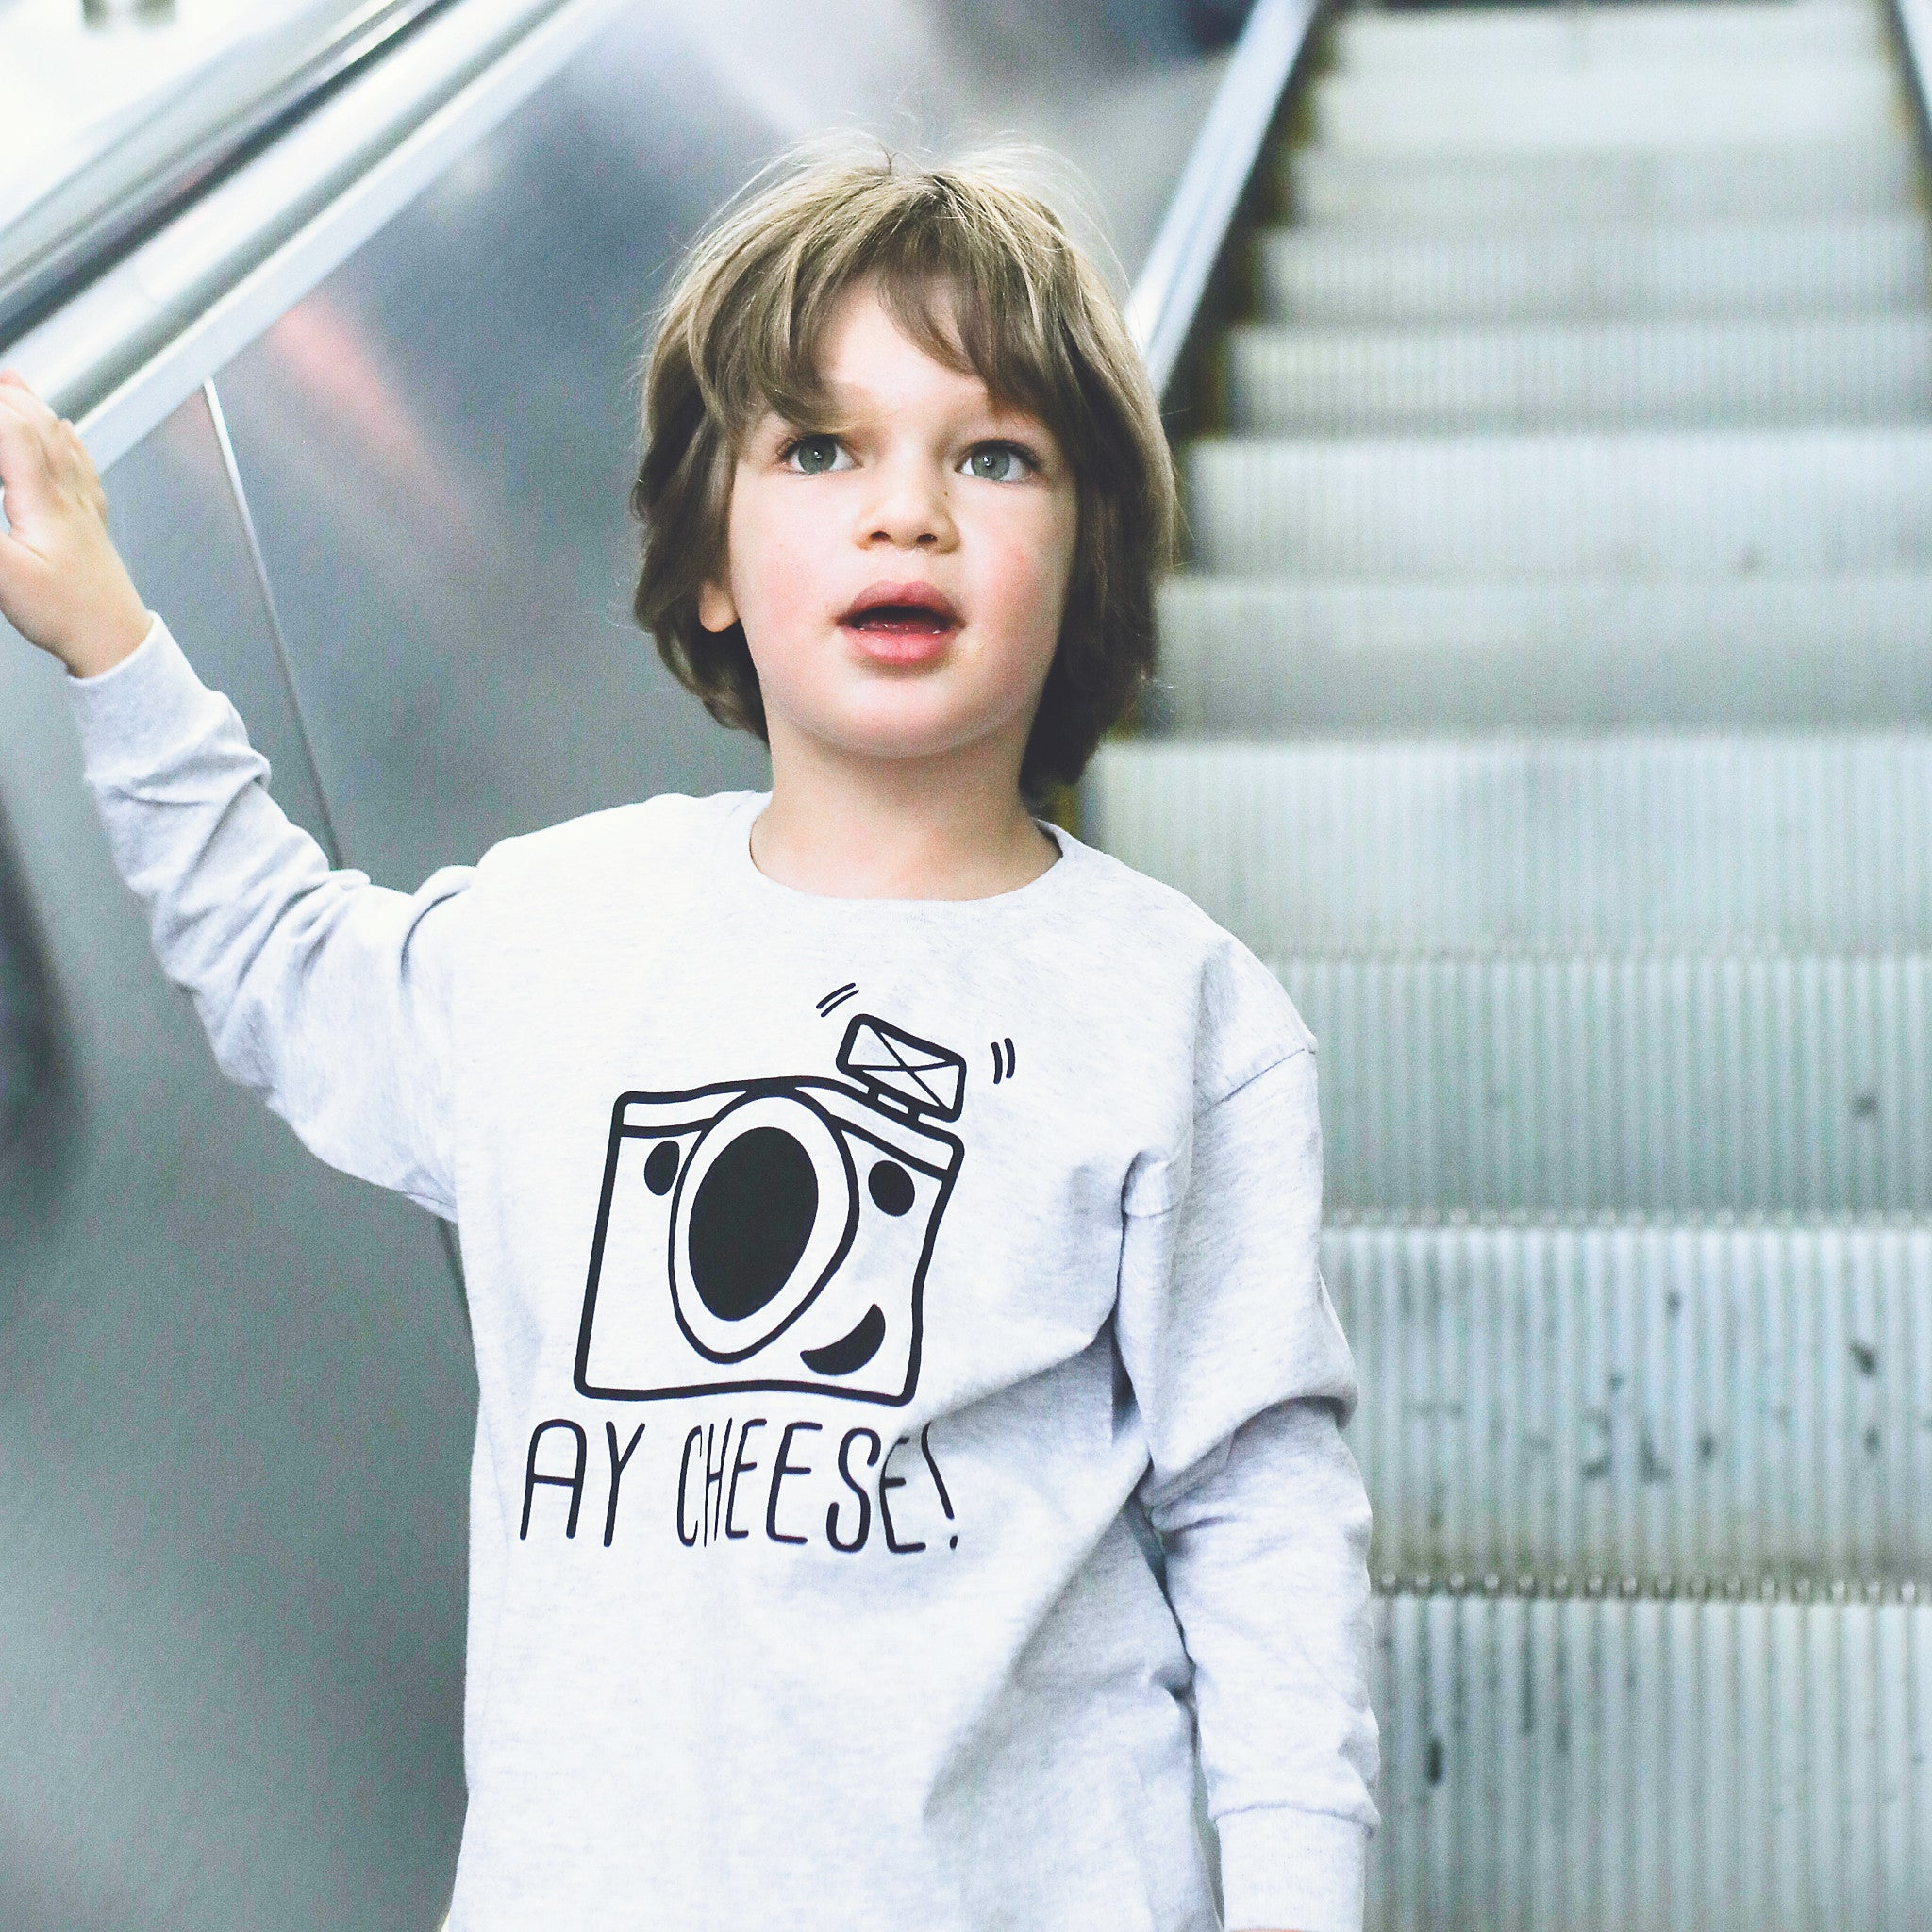 Say cheese' kids longsleeve shirt